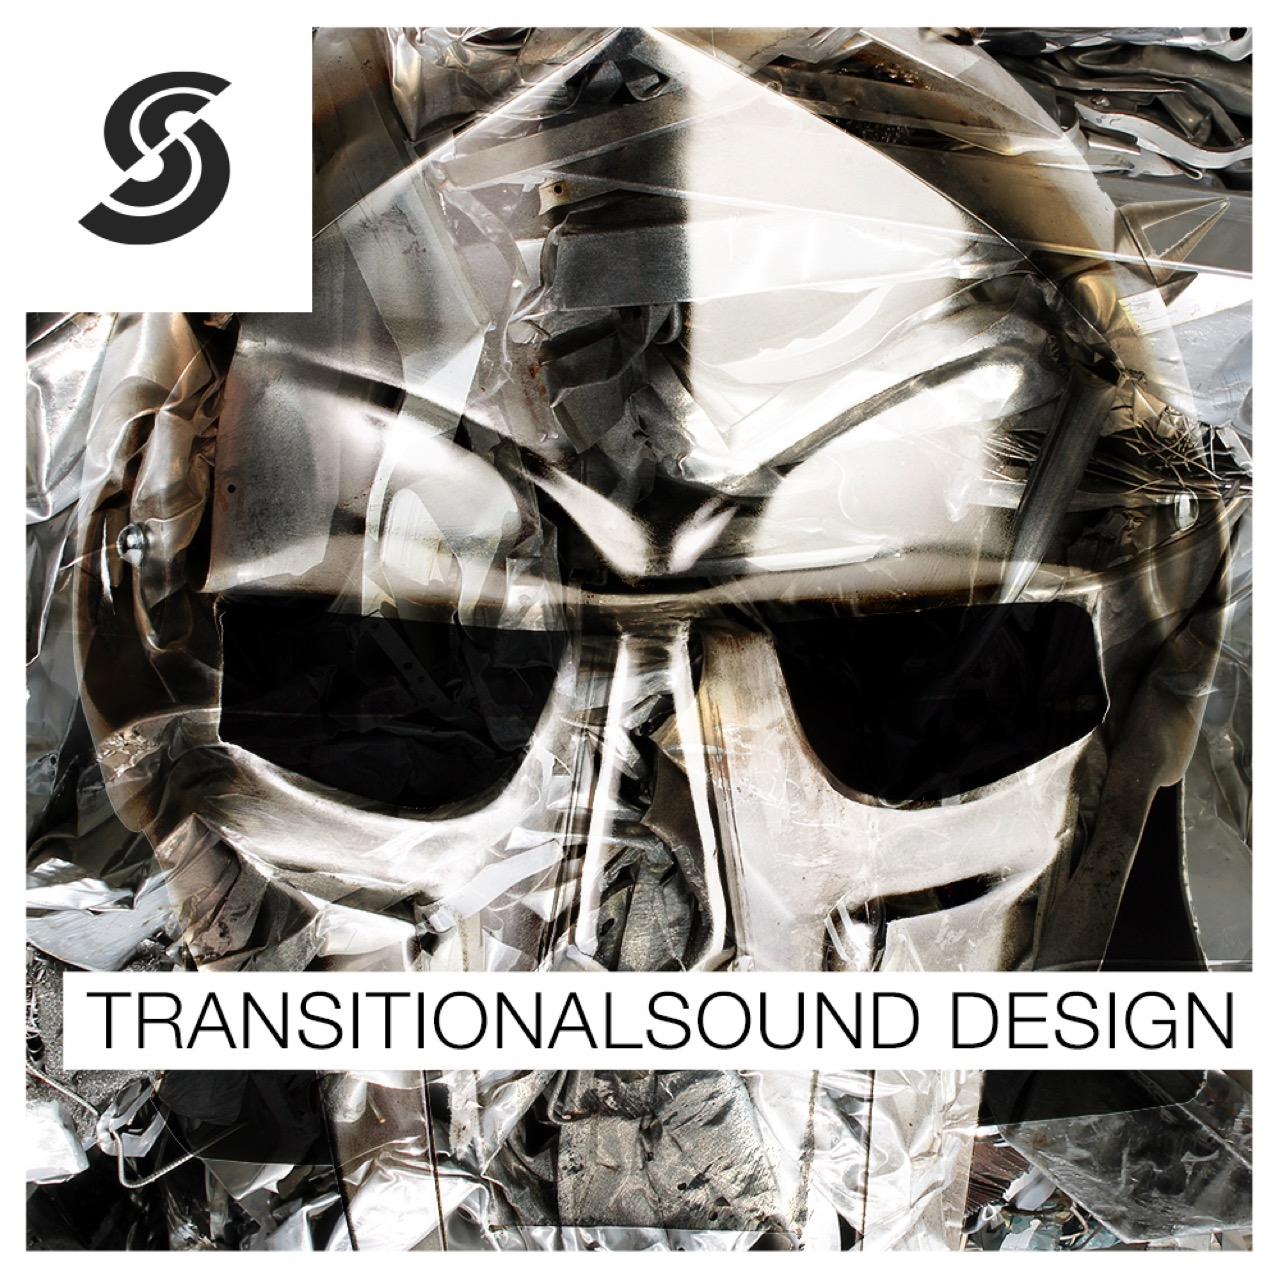 Transitional sound design x